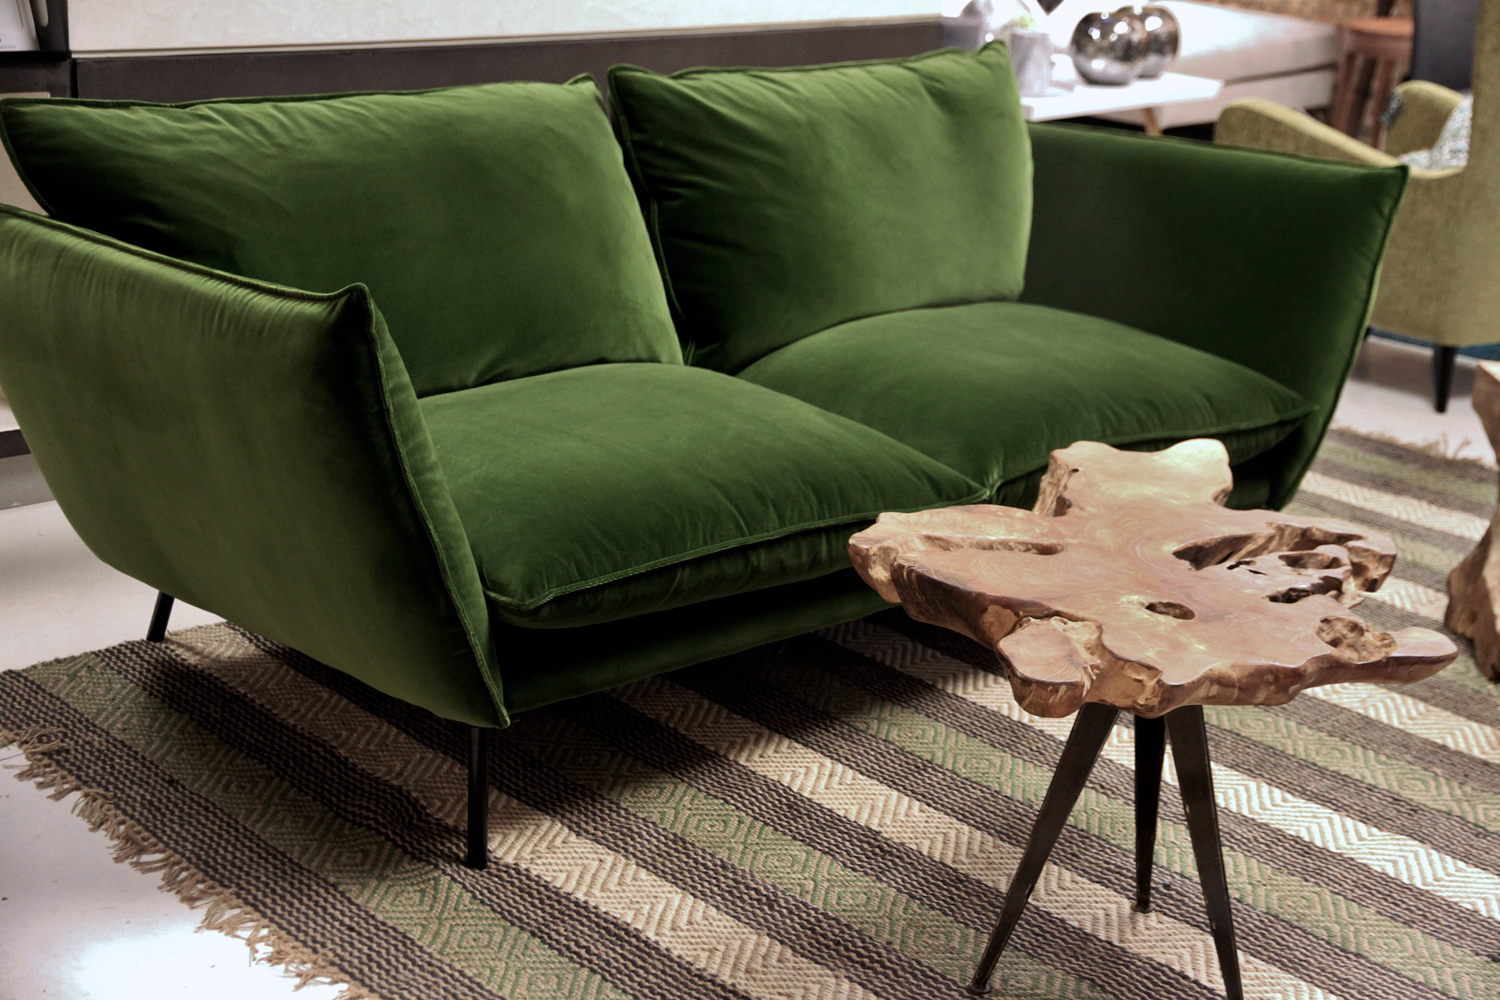 D co de novembre chez moa interieur le buzz de rouen for Canape velours vert